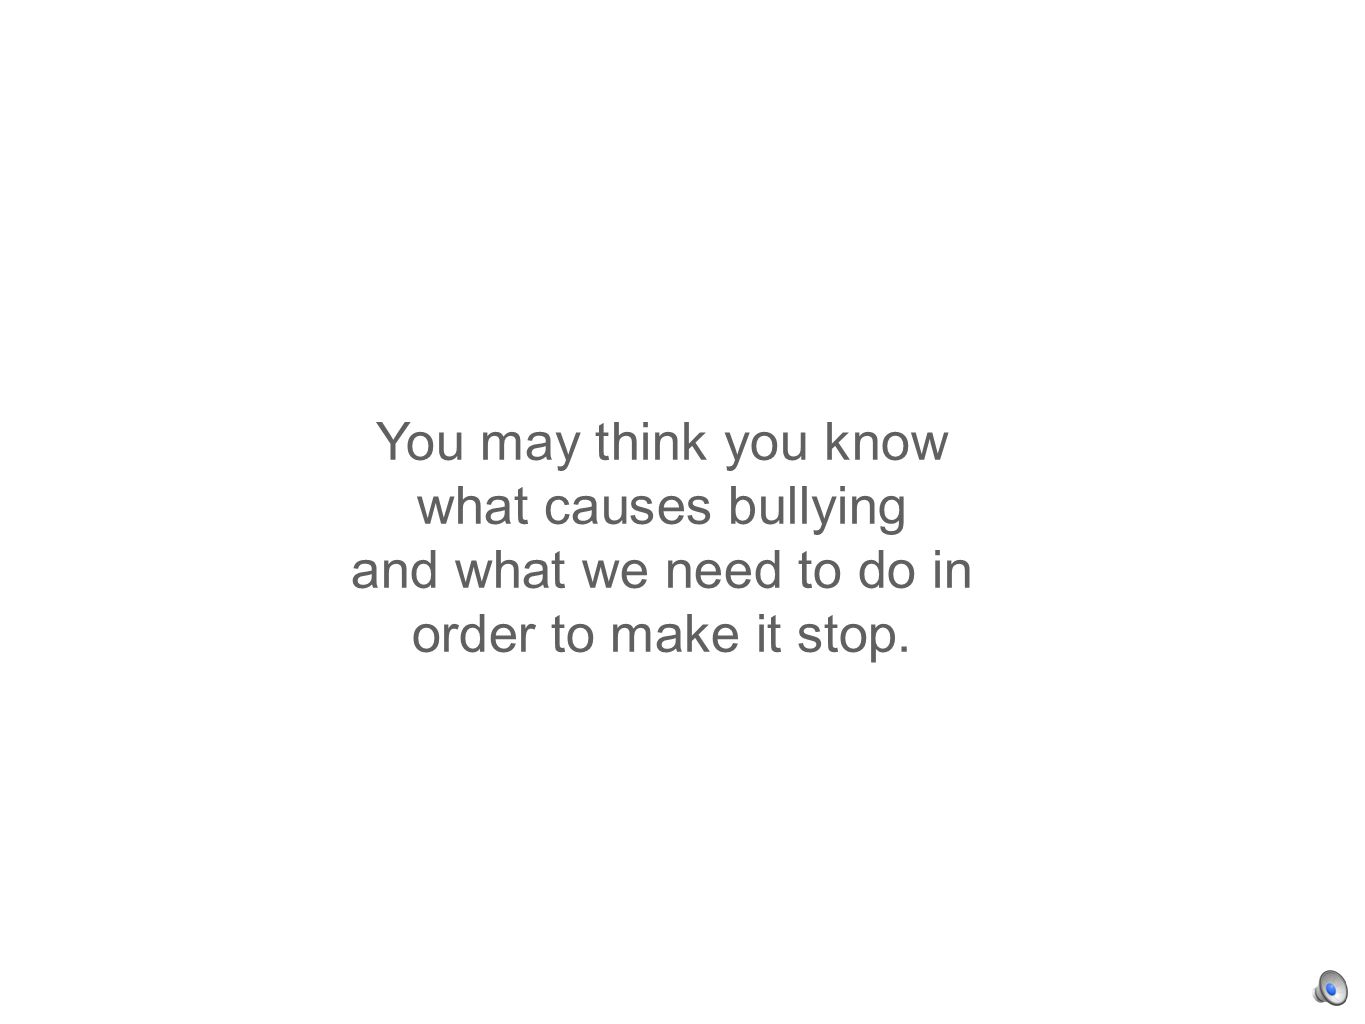 You may think you know what causes bullying and what we need to do in order to make it stop.